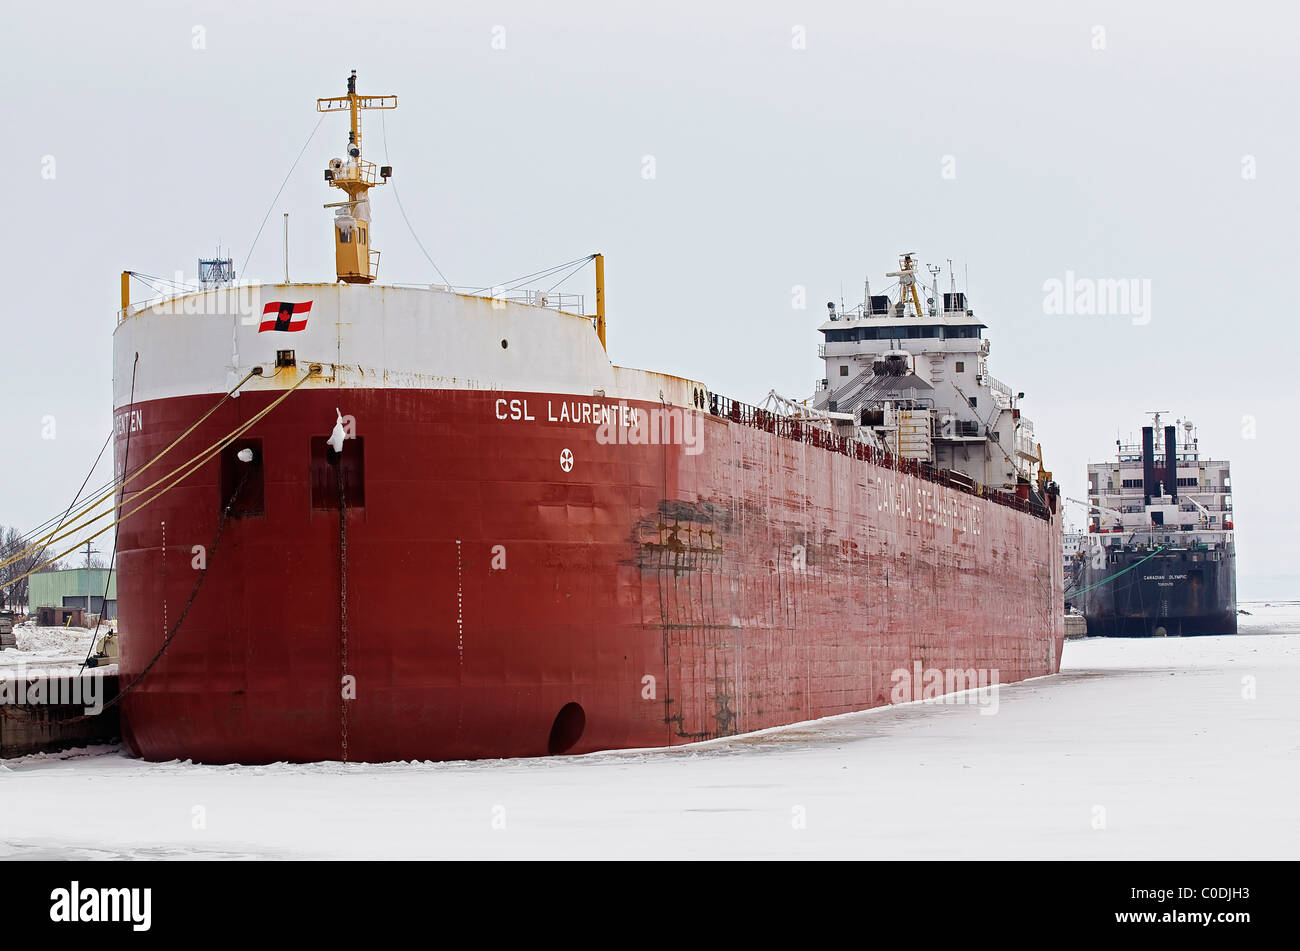 The CSL Laurentien and Canadian Olympic in Winter Harbour in Port Colborne, Ontario, Canada. Feb. 2/2011. - Stock Image